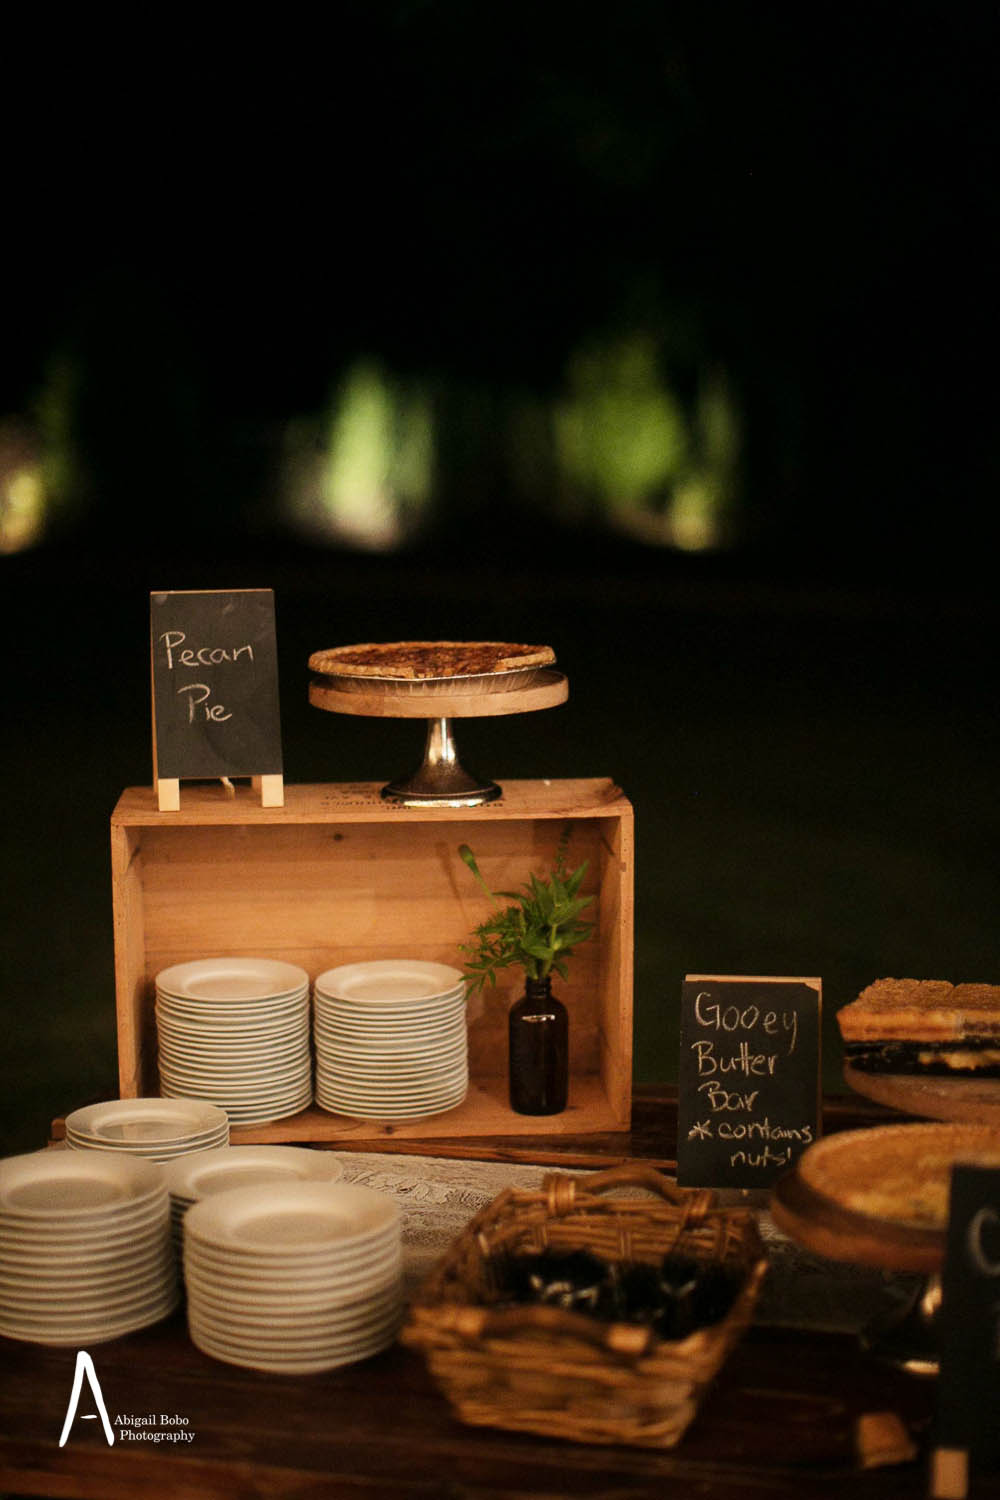 dessert display with crates and pies